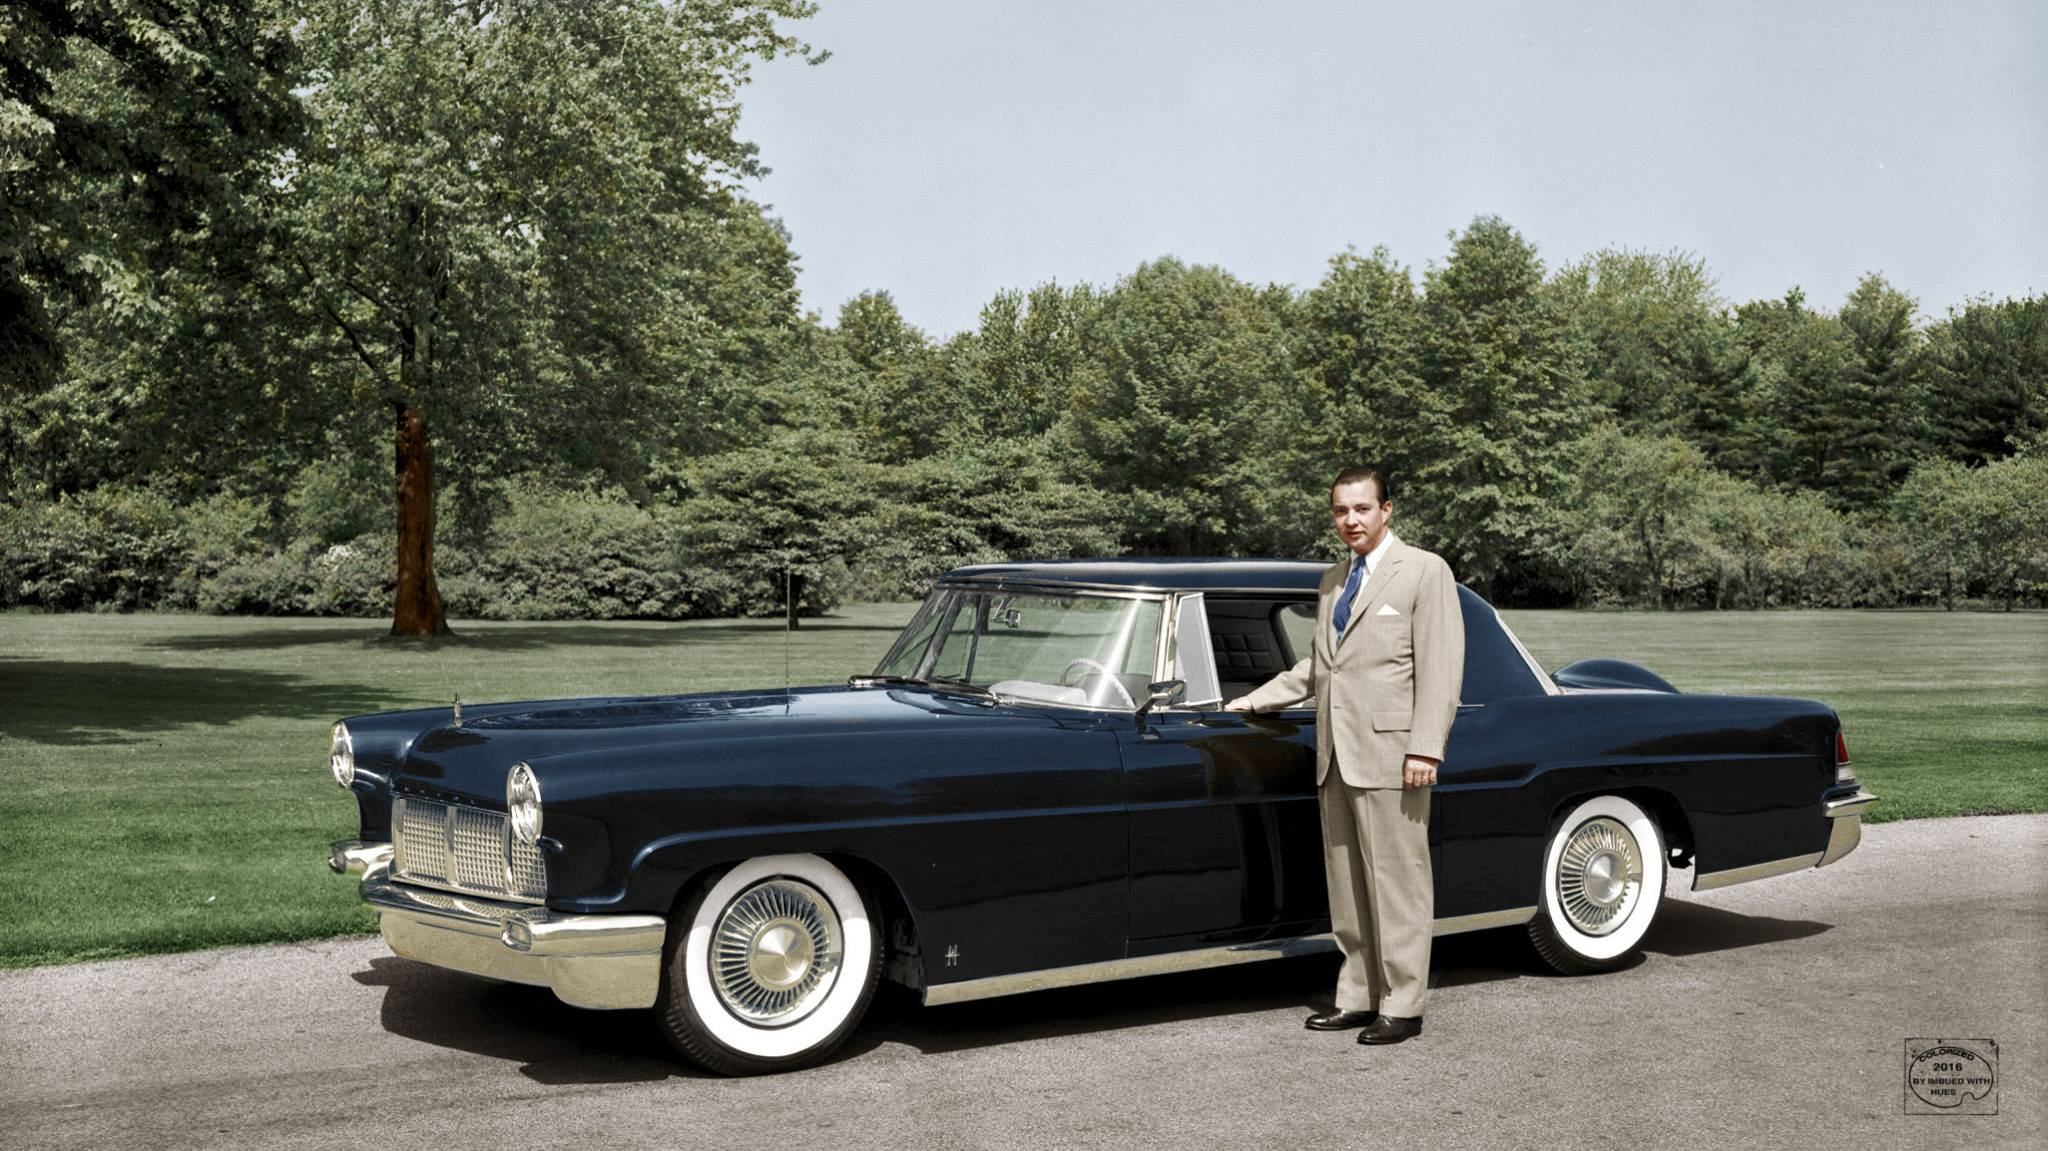 1956 Continental Mark II ретро автомобили, ретро фото, фотографии